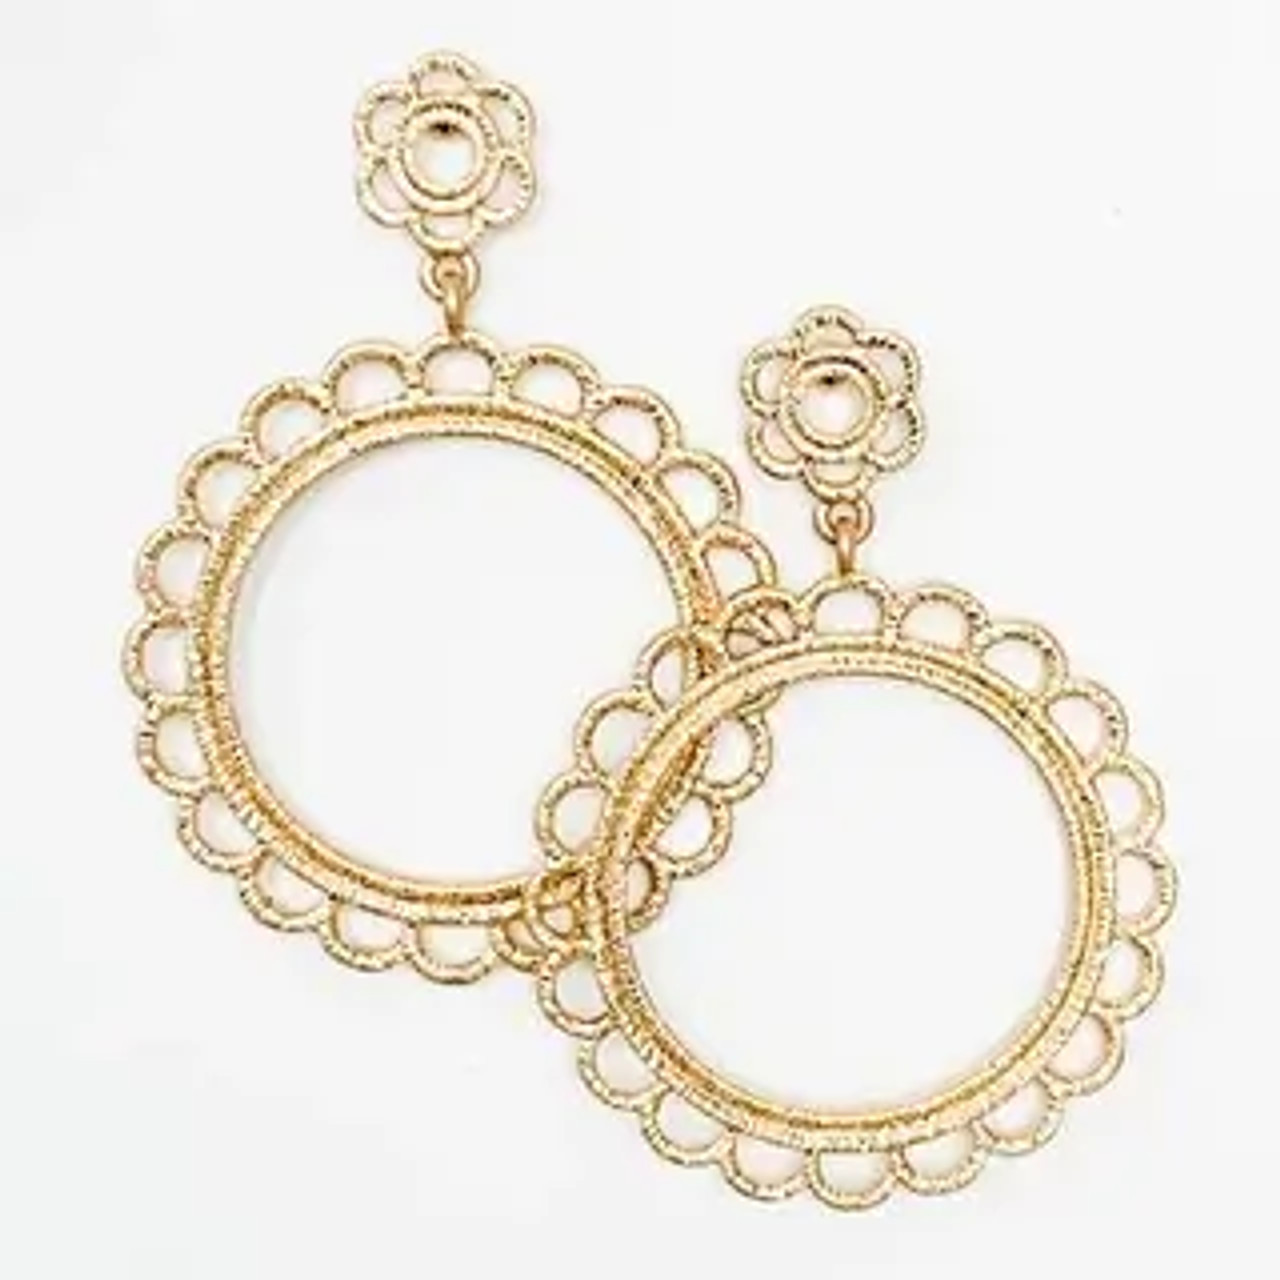 """Metal earrings with thread wrapped lace look. 2 1/5"""" drop from post backs"""